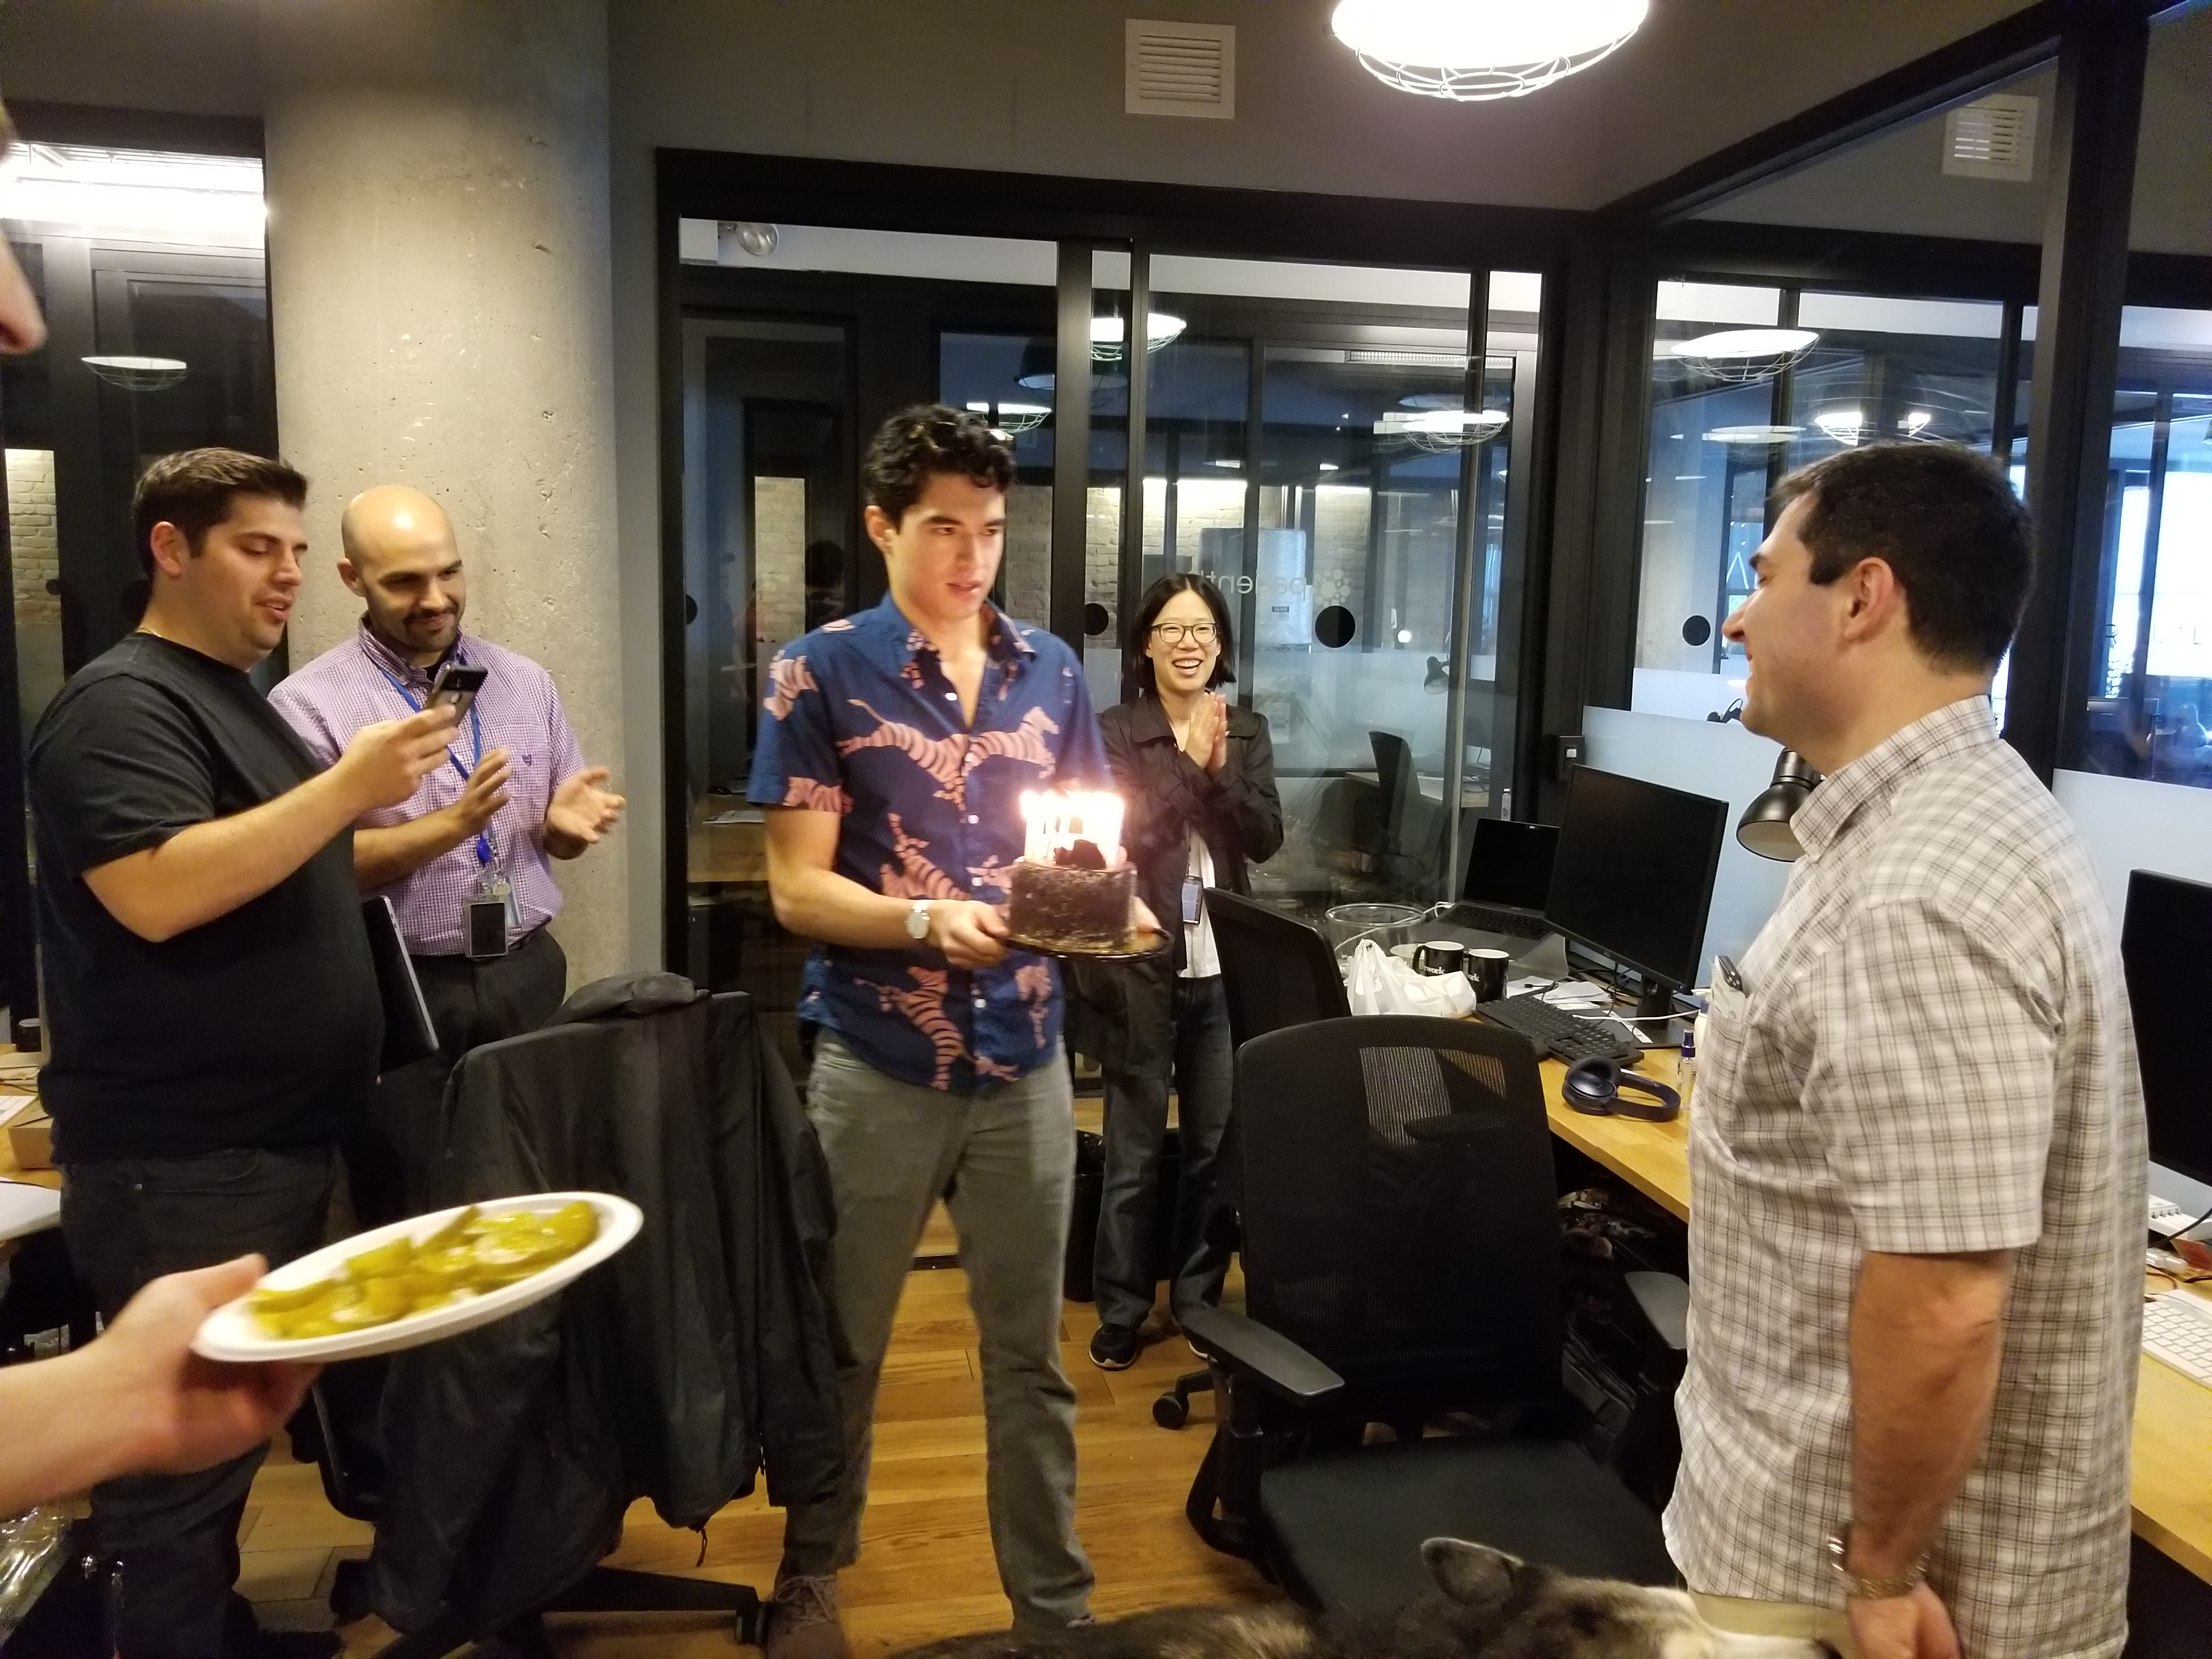 PatientIQ employees celebrating in Chicago office